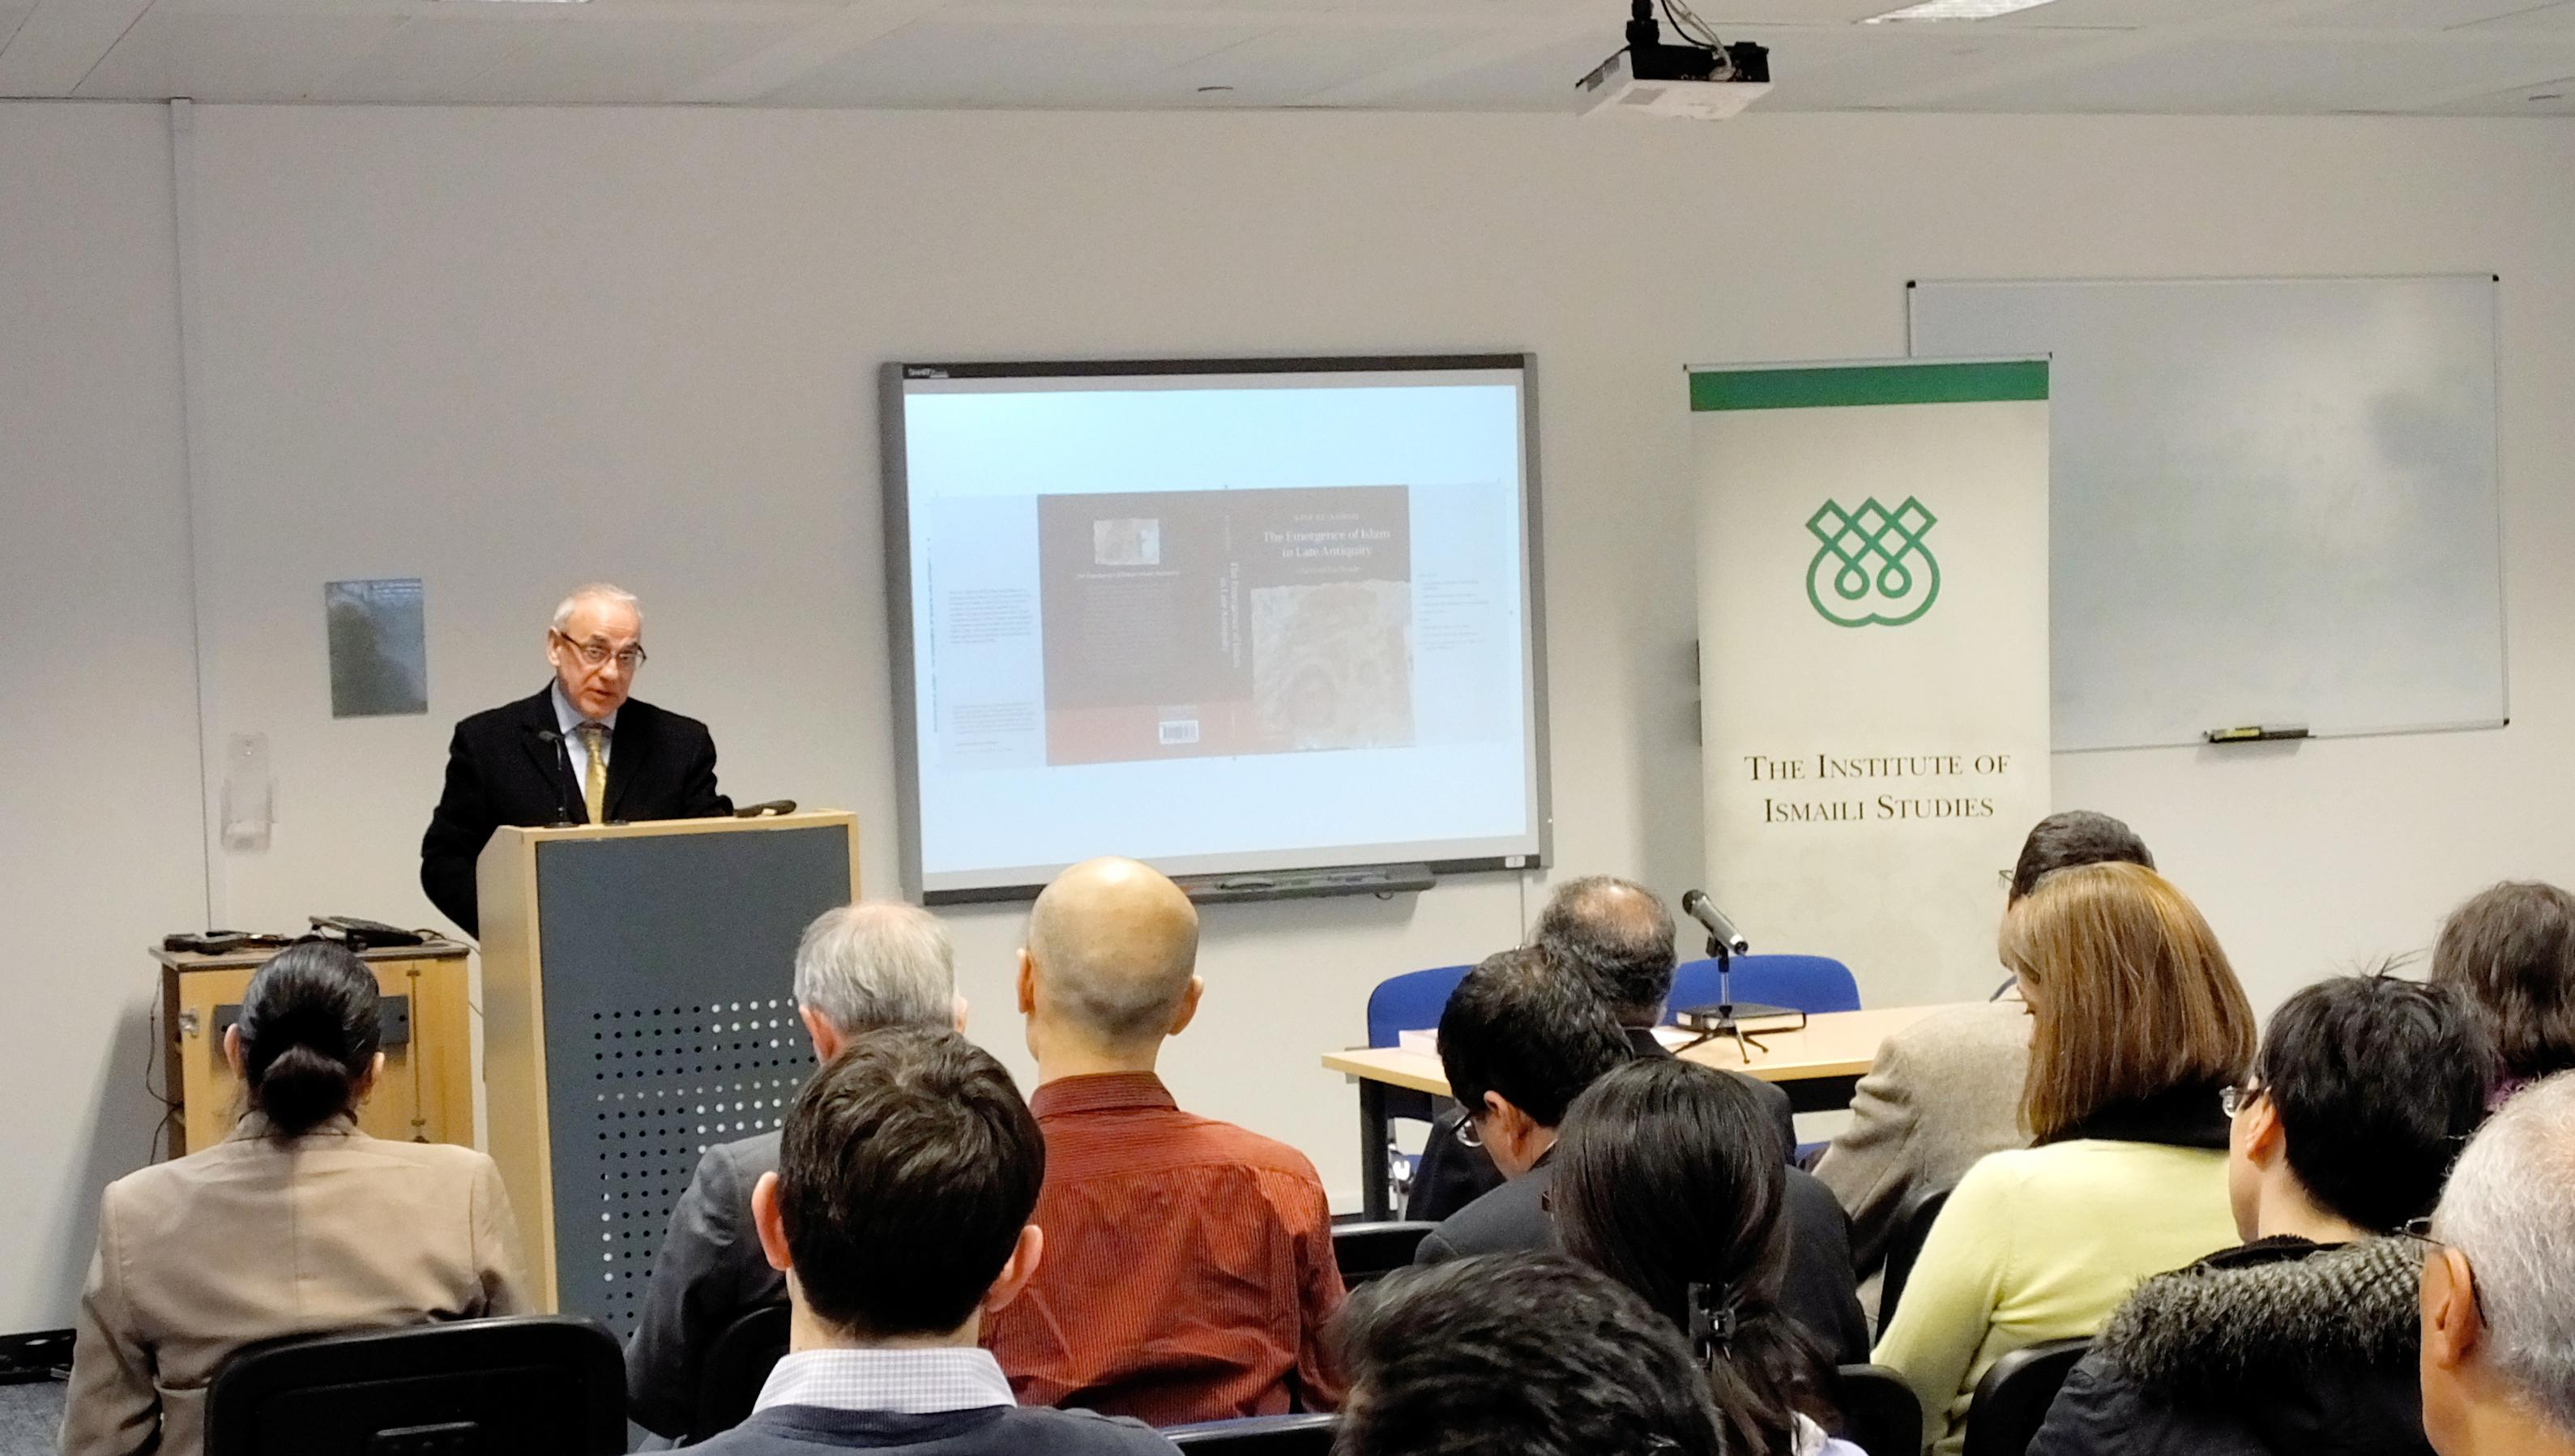 Professor Al-Azmeh giving his lecture at the IIS, 2014.